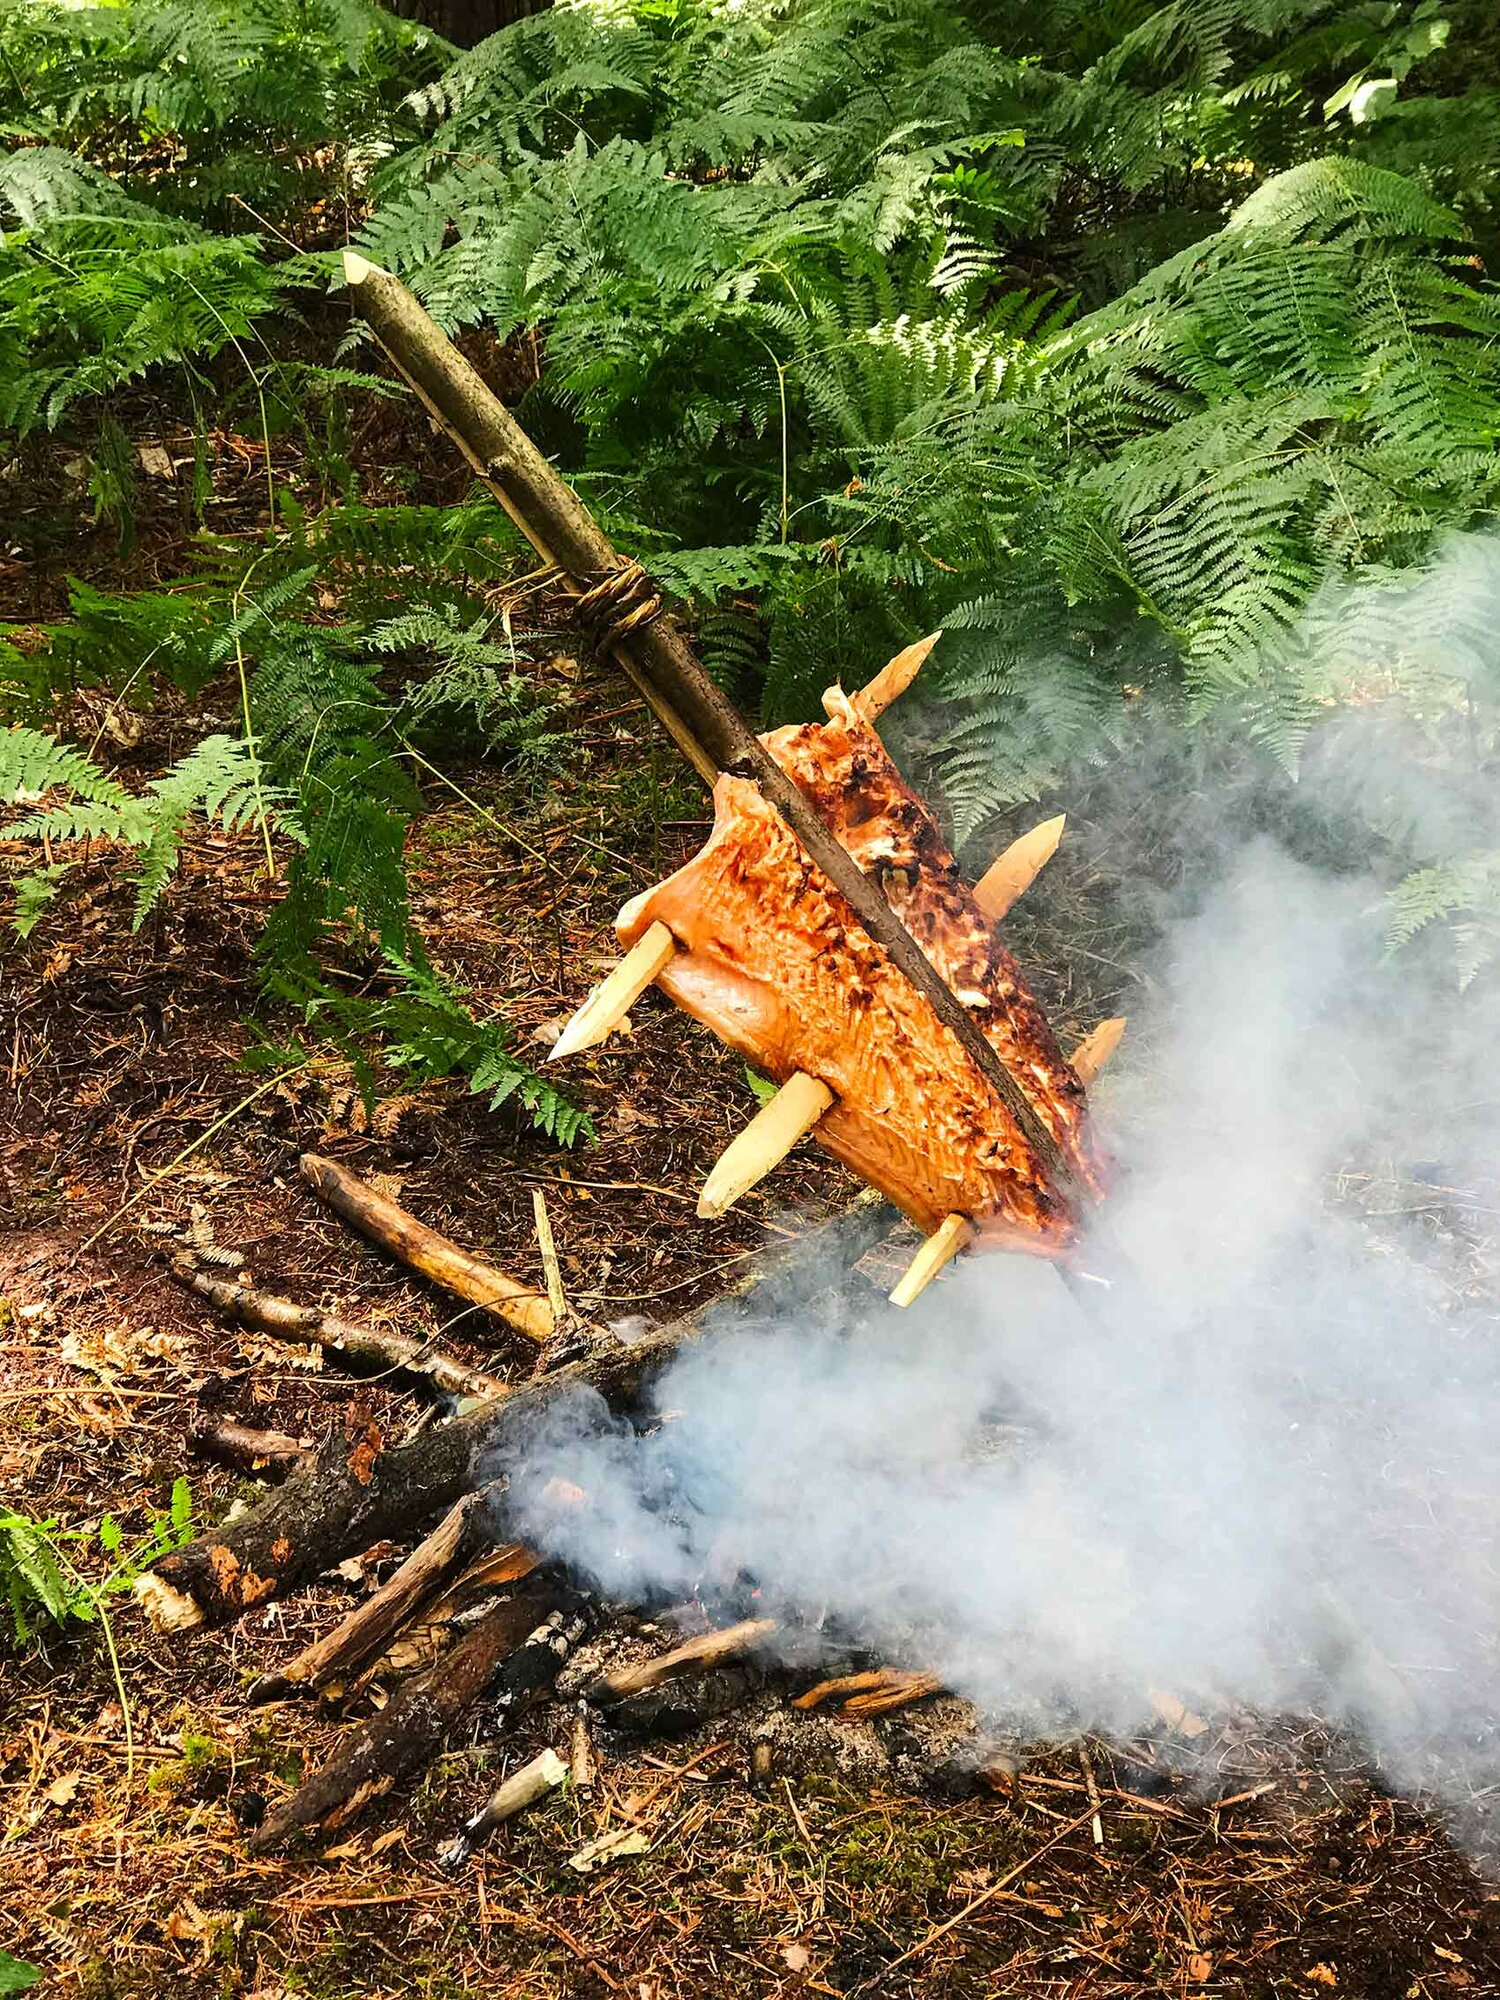 Getting the fire going in the rain.  A fresh wild salmon cooked over birch wood tastes fantastic, especially when you have been standing in the rain for a few hours.